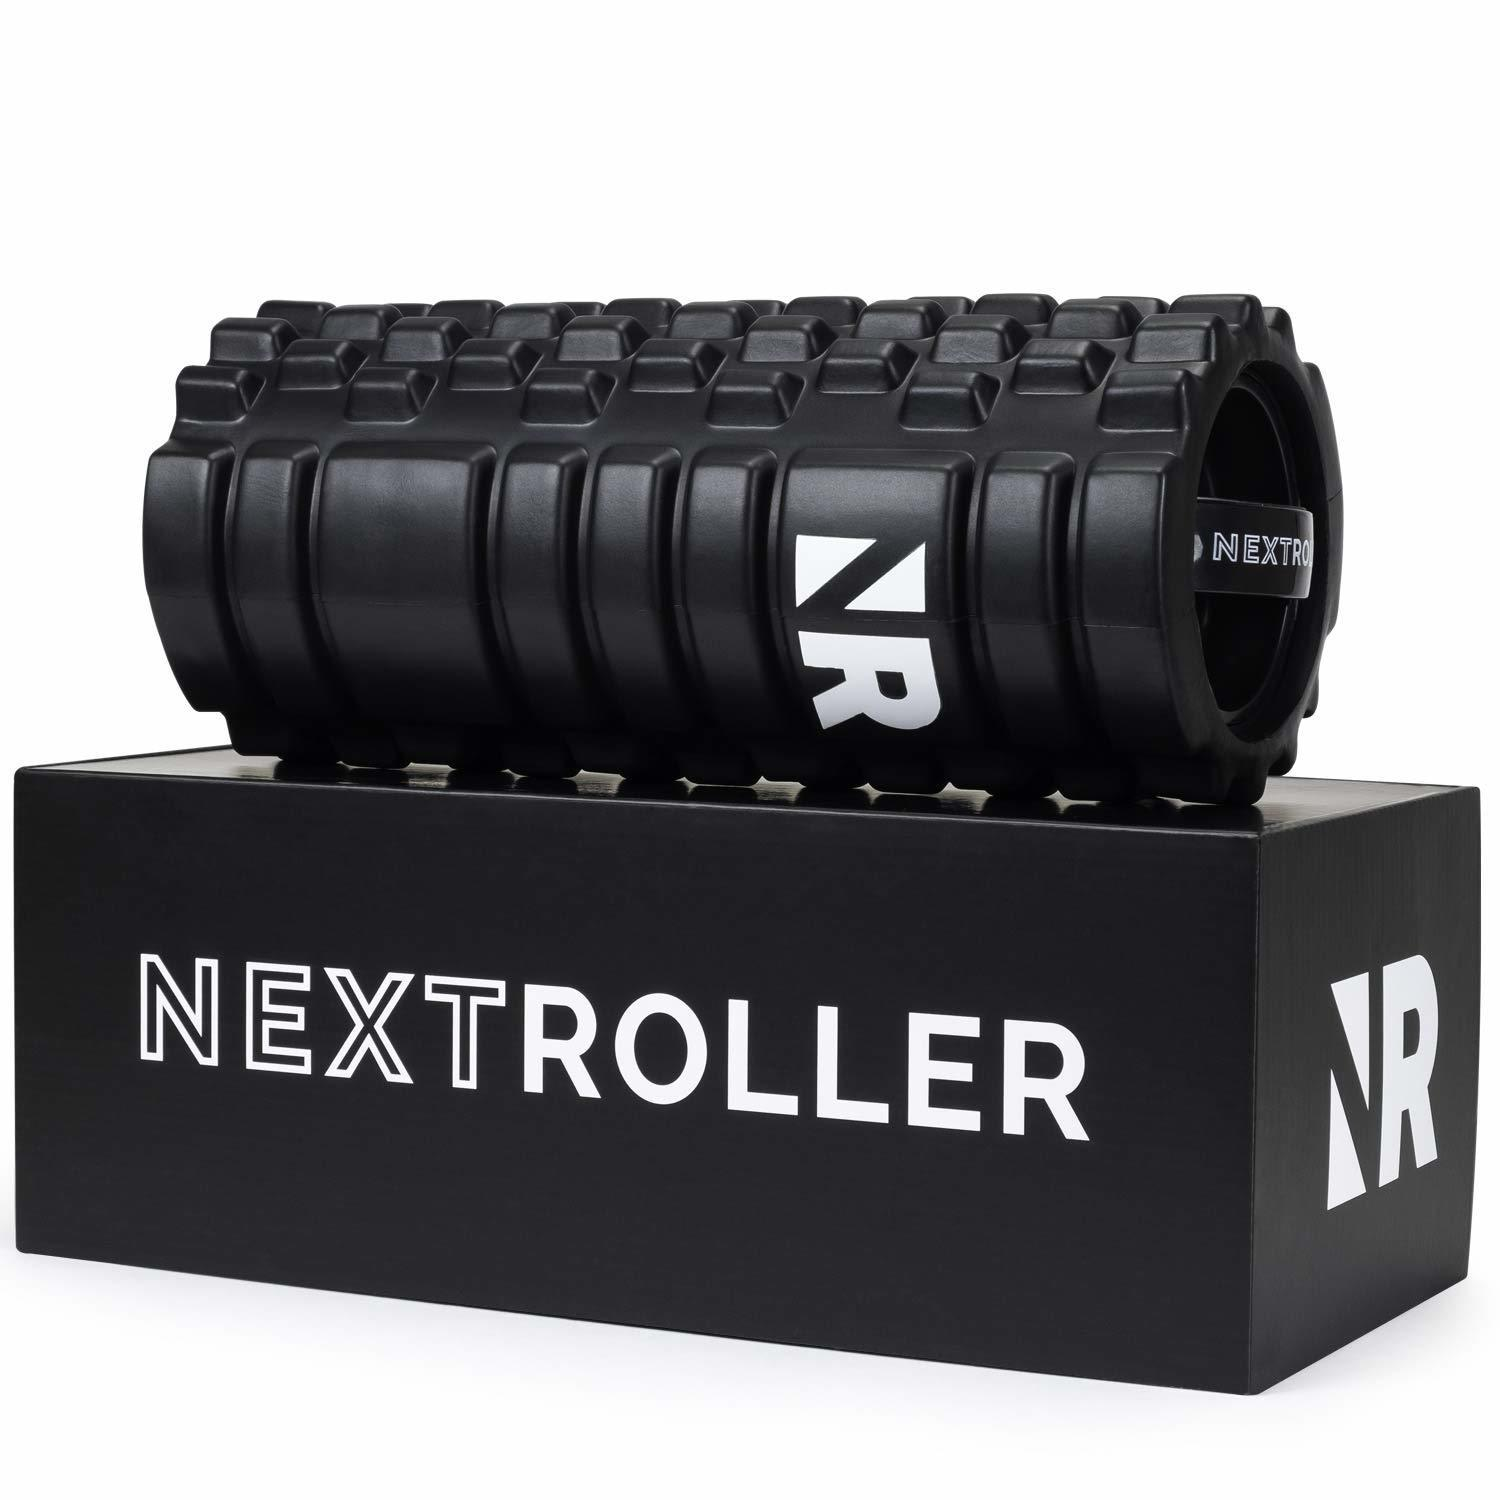 Recommended foam roller for pro crossfit athletes